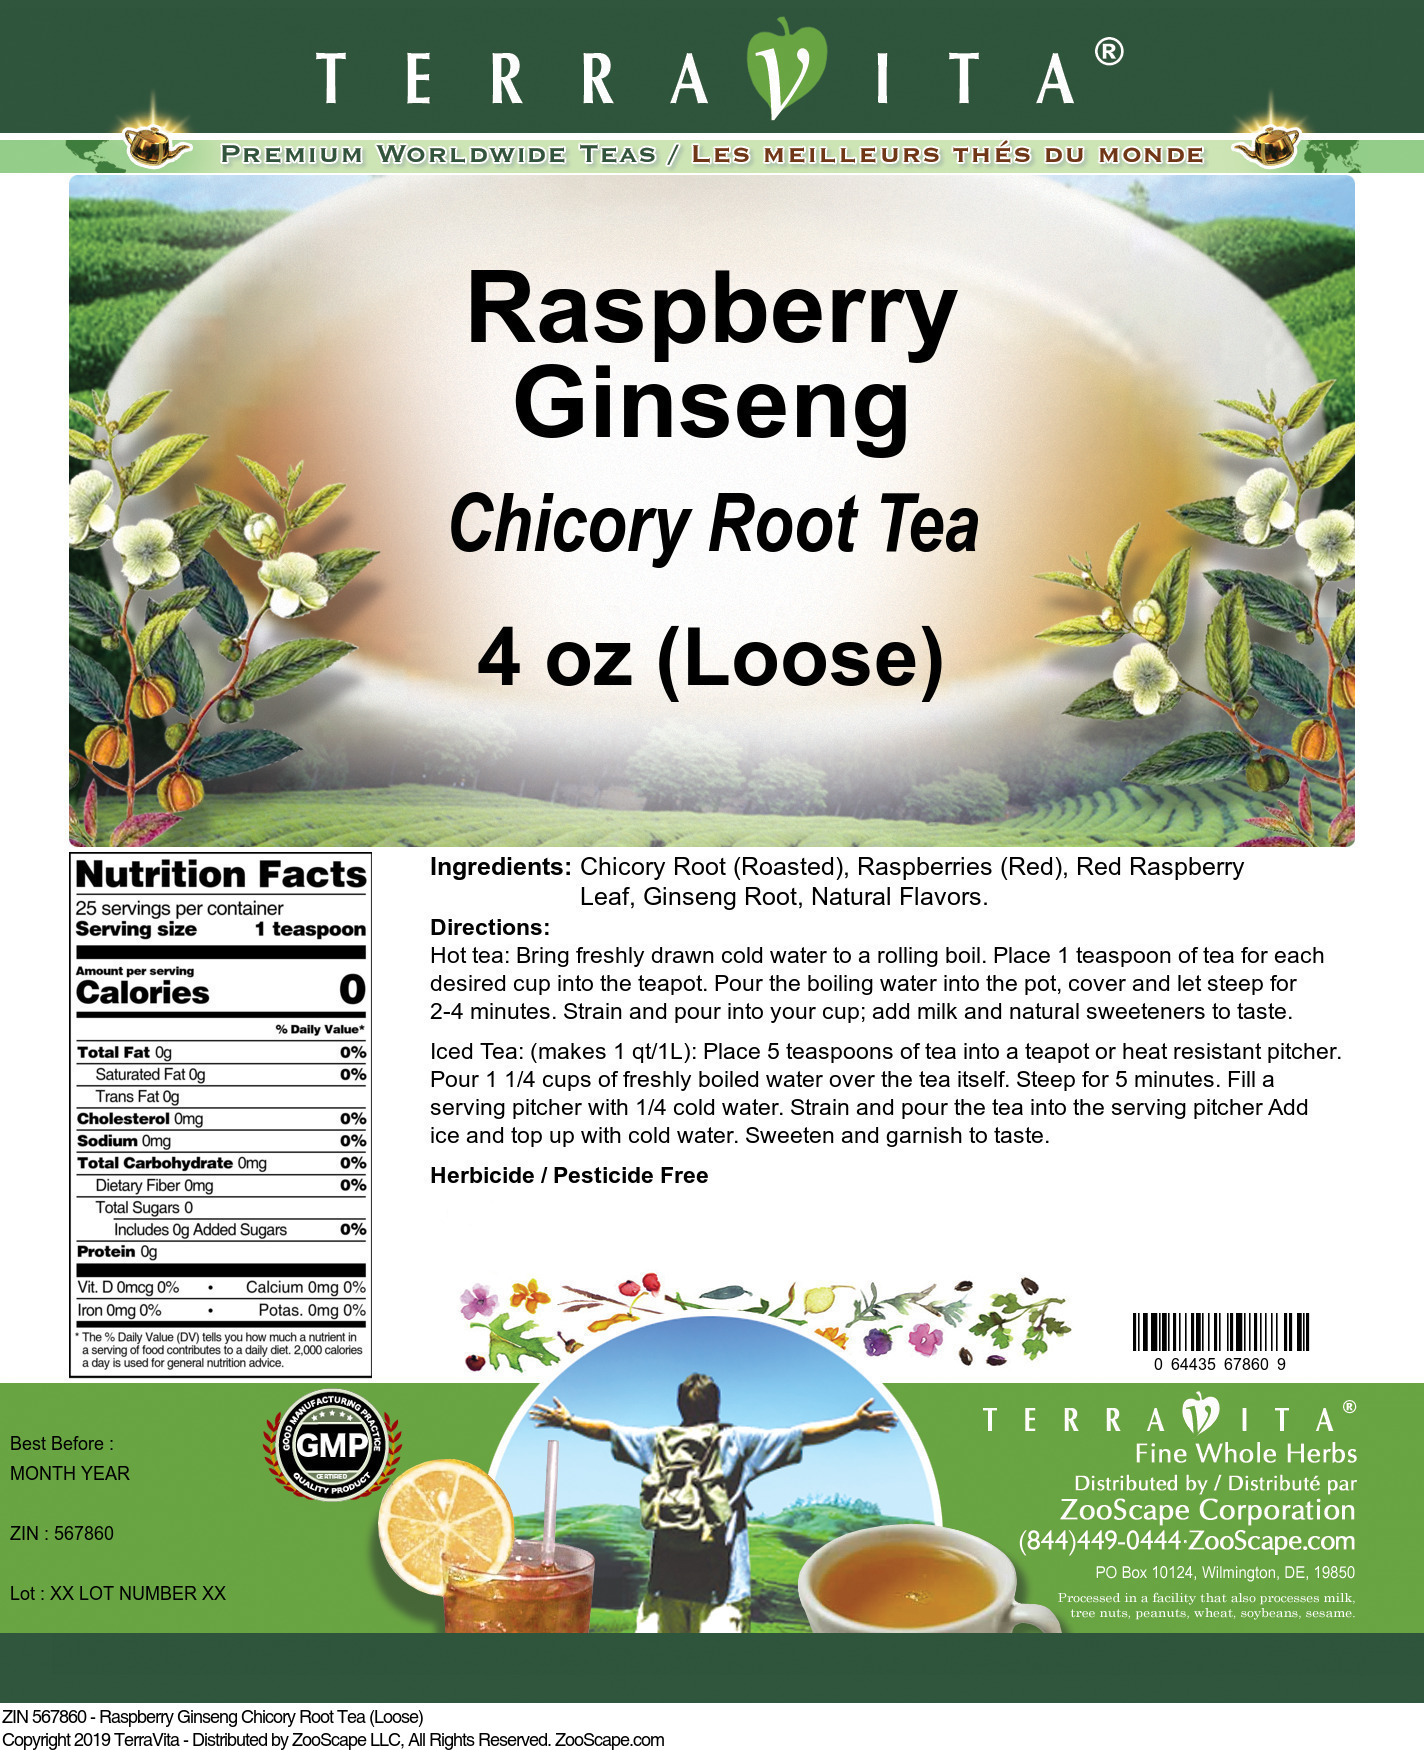 Raspberry Ginseng Chicory Root Tea (Loose)